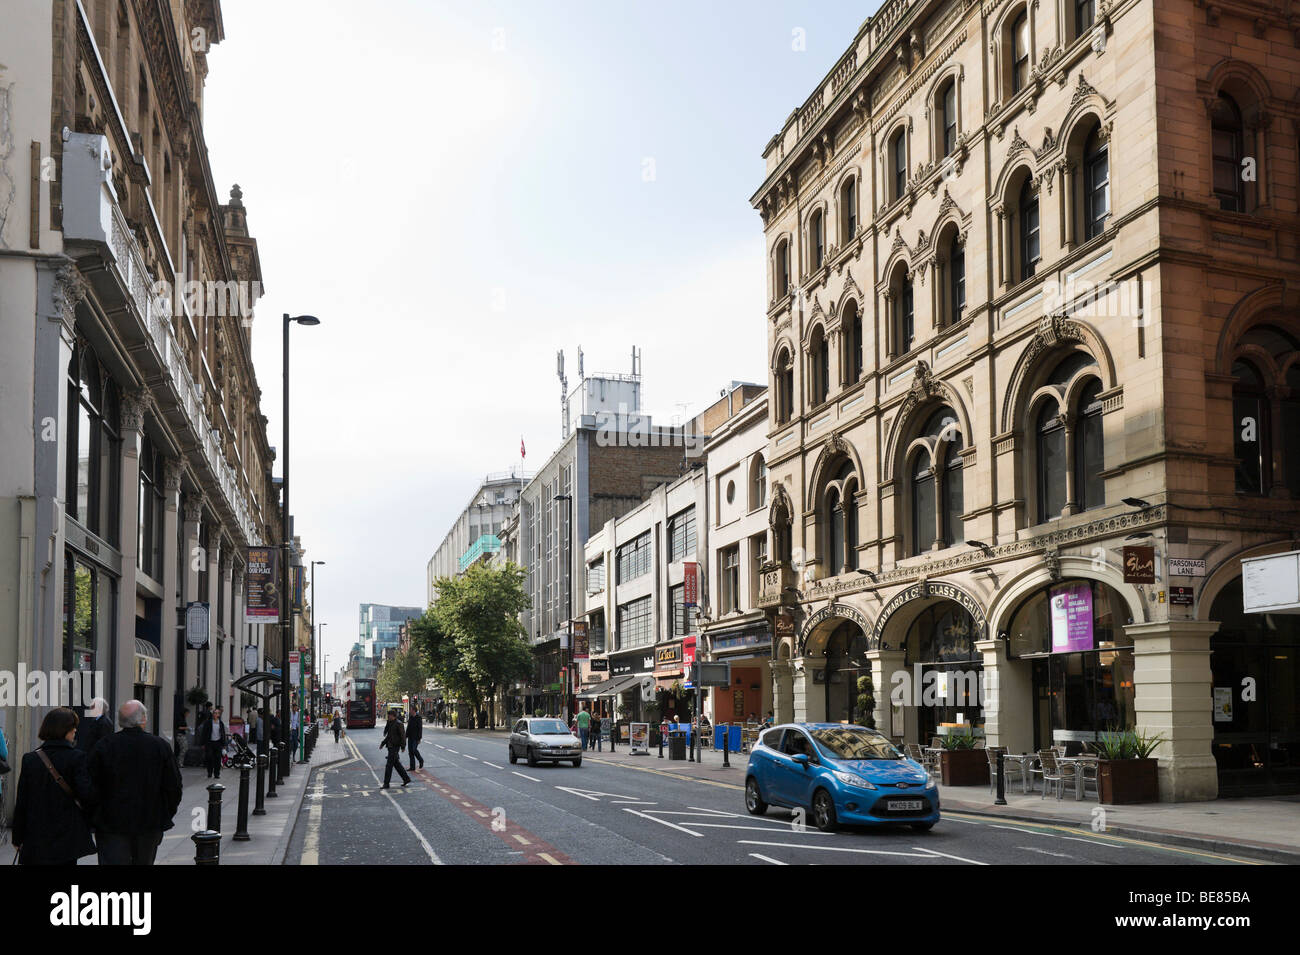 Deansgate in the city centre, Manchester, England - Stock Image